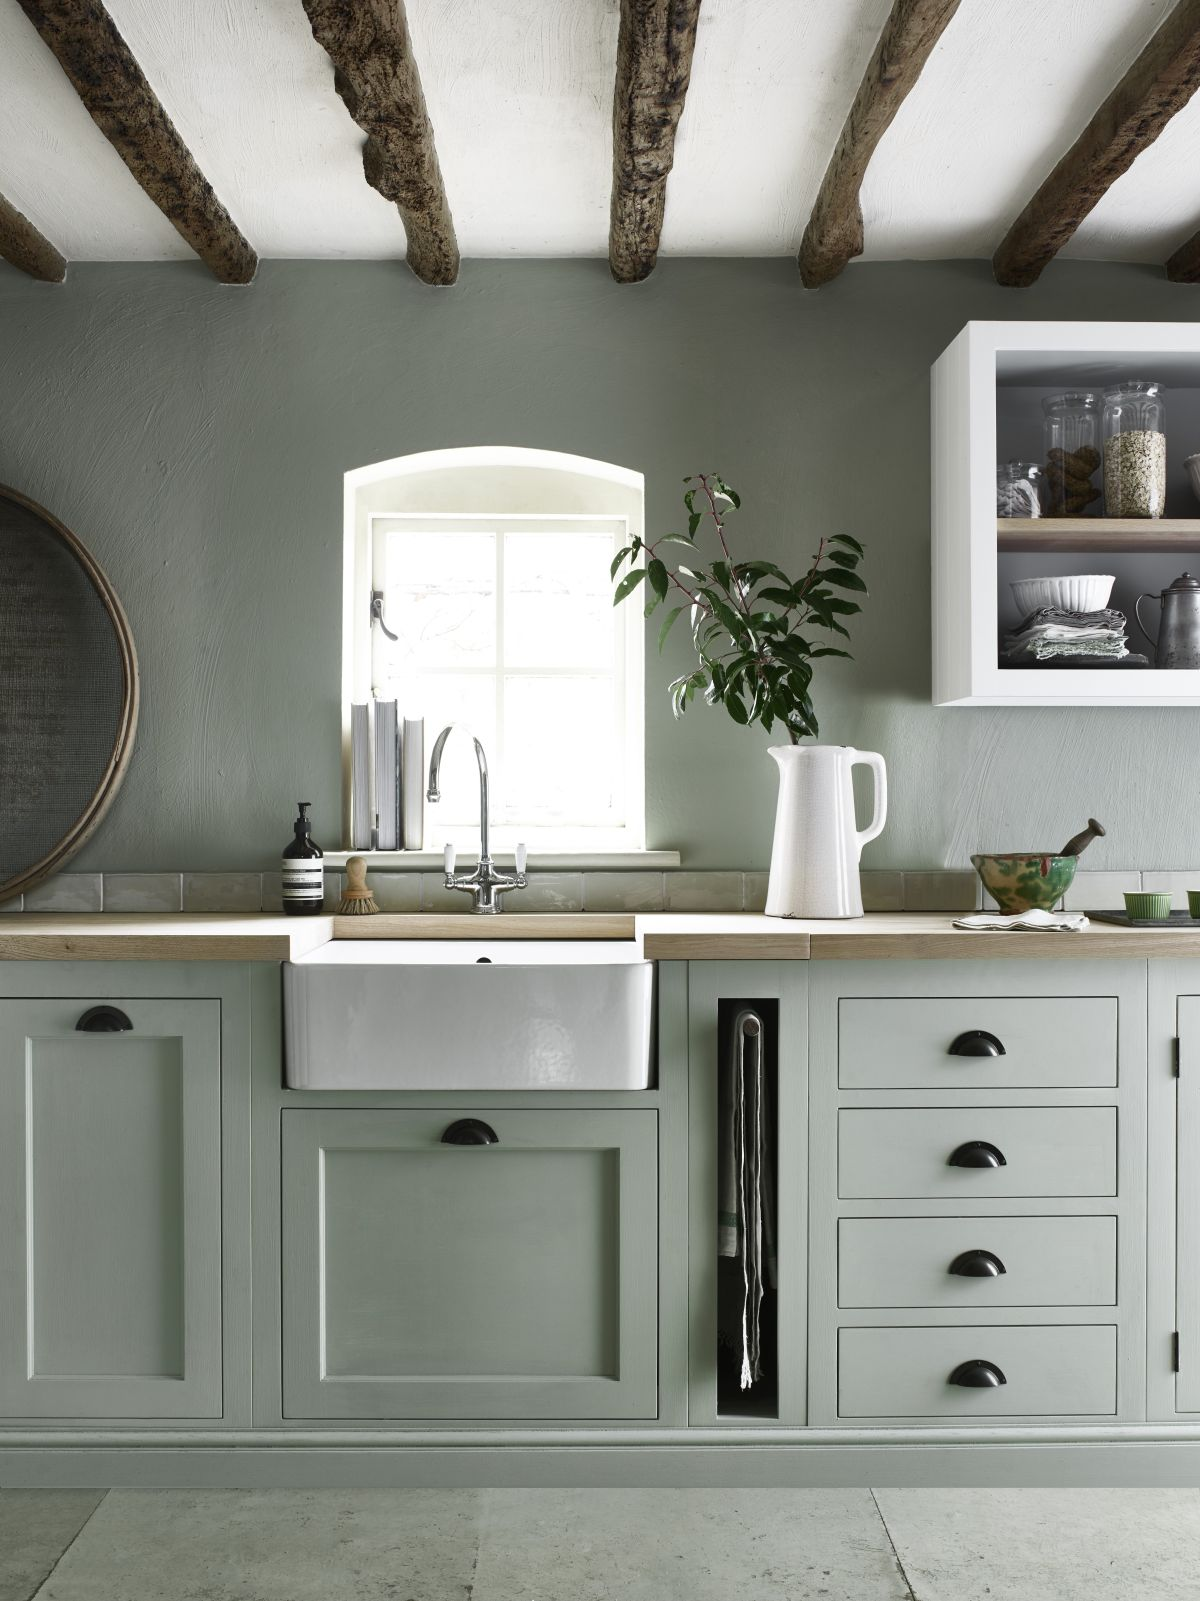 Green is 2020's biggest kitchen color trend